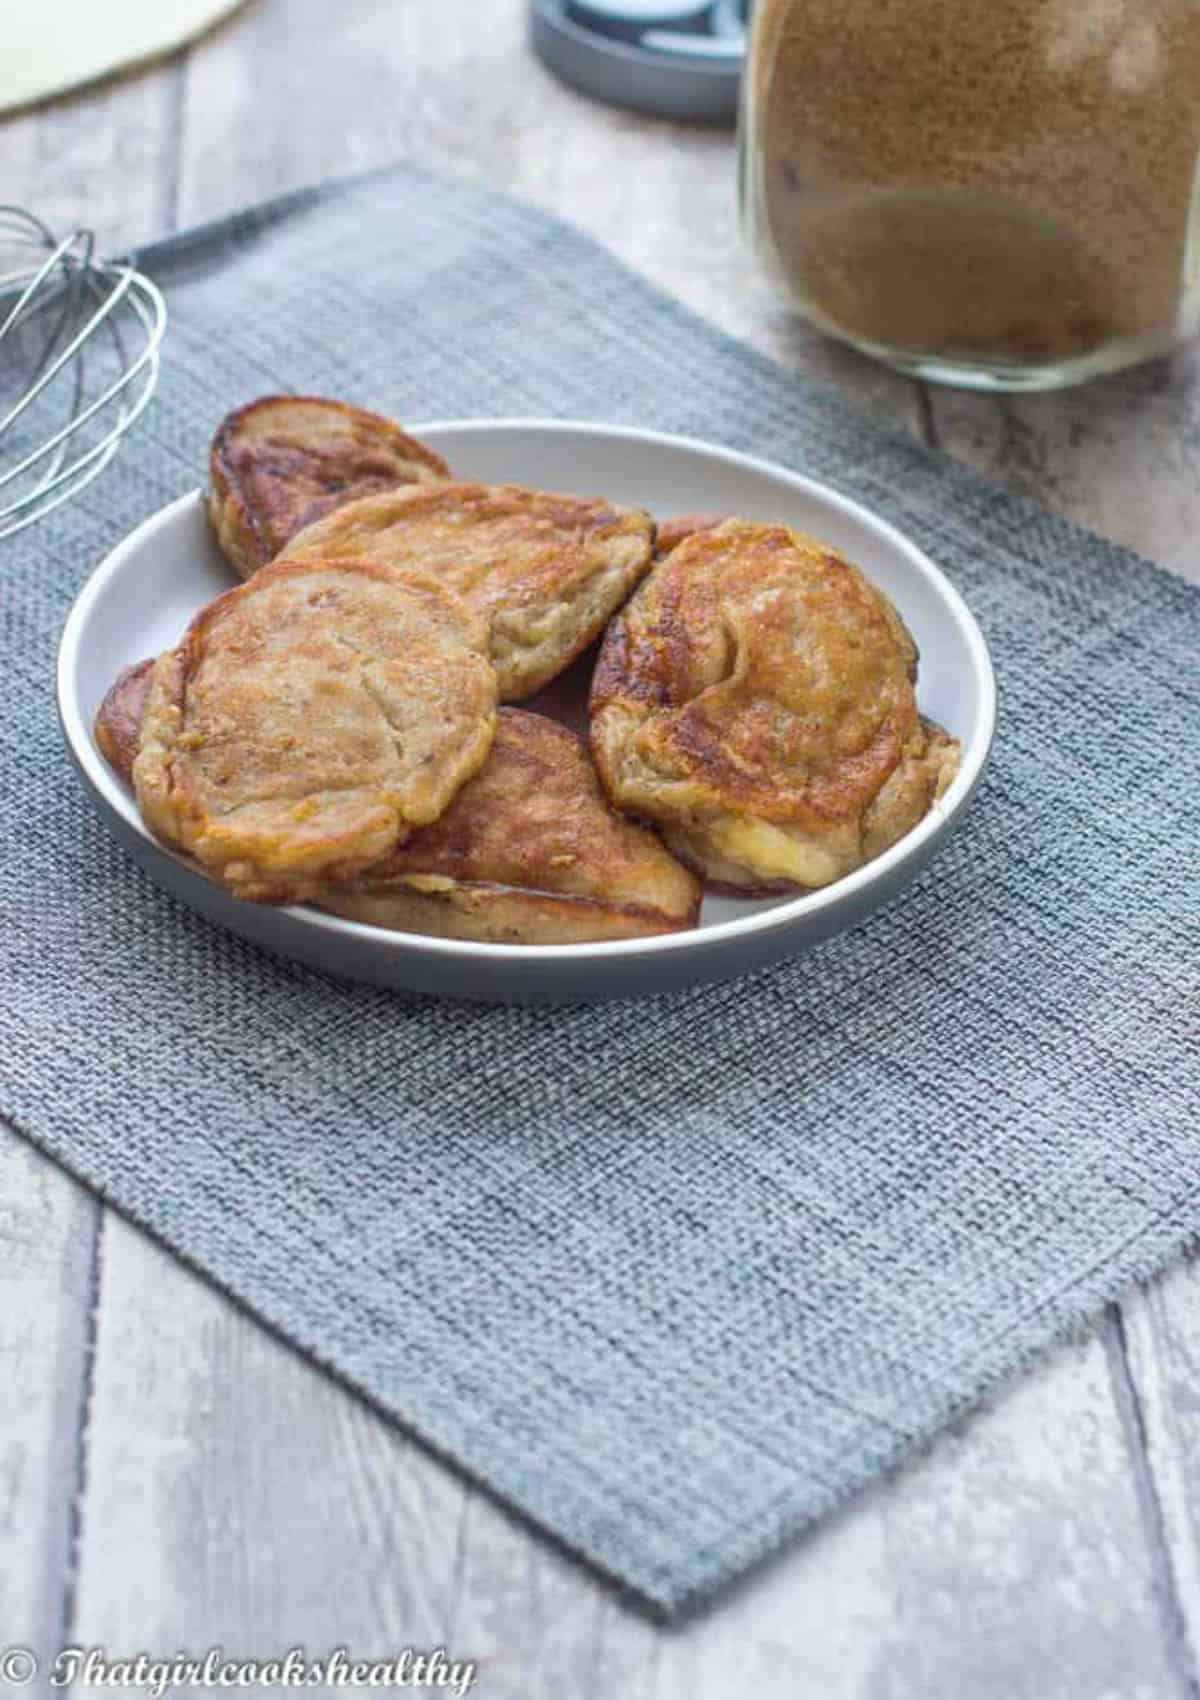 Fritters on a gray placemat